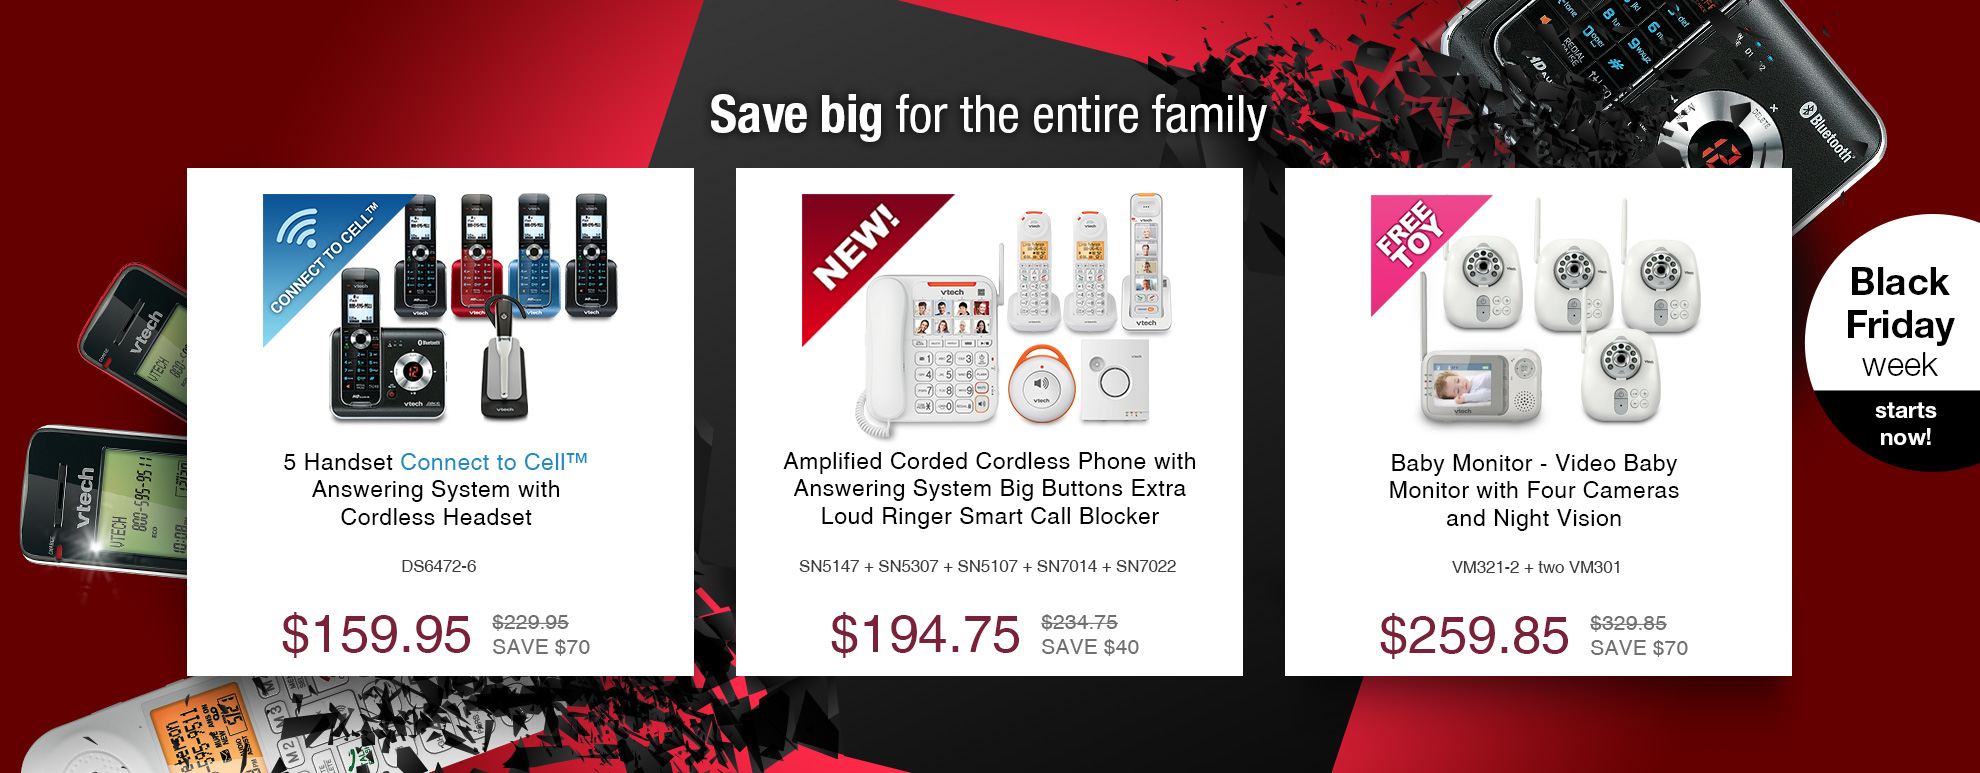 Save big for the entire family